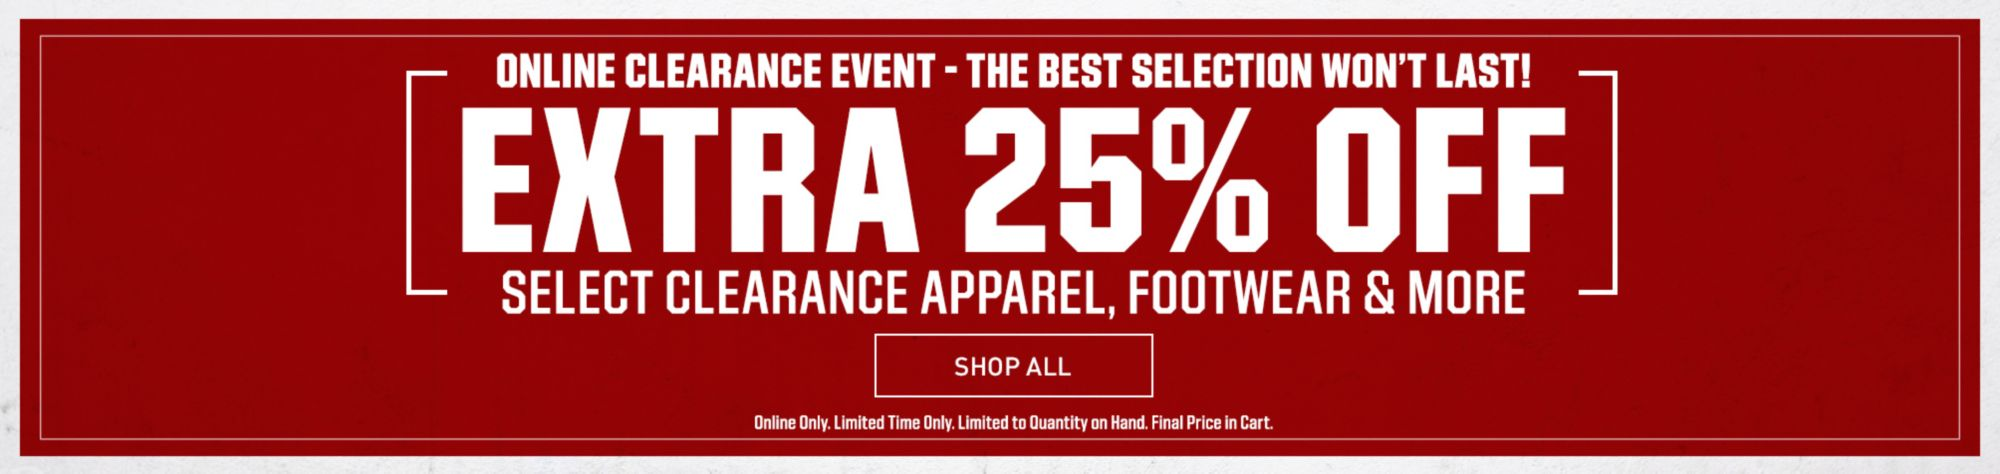 Extra 25% Off Select Styles